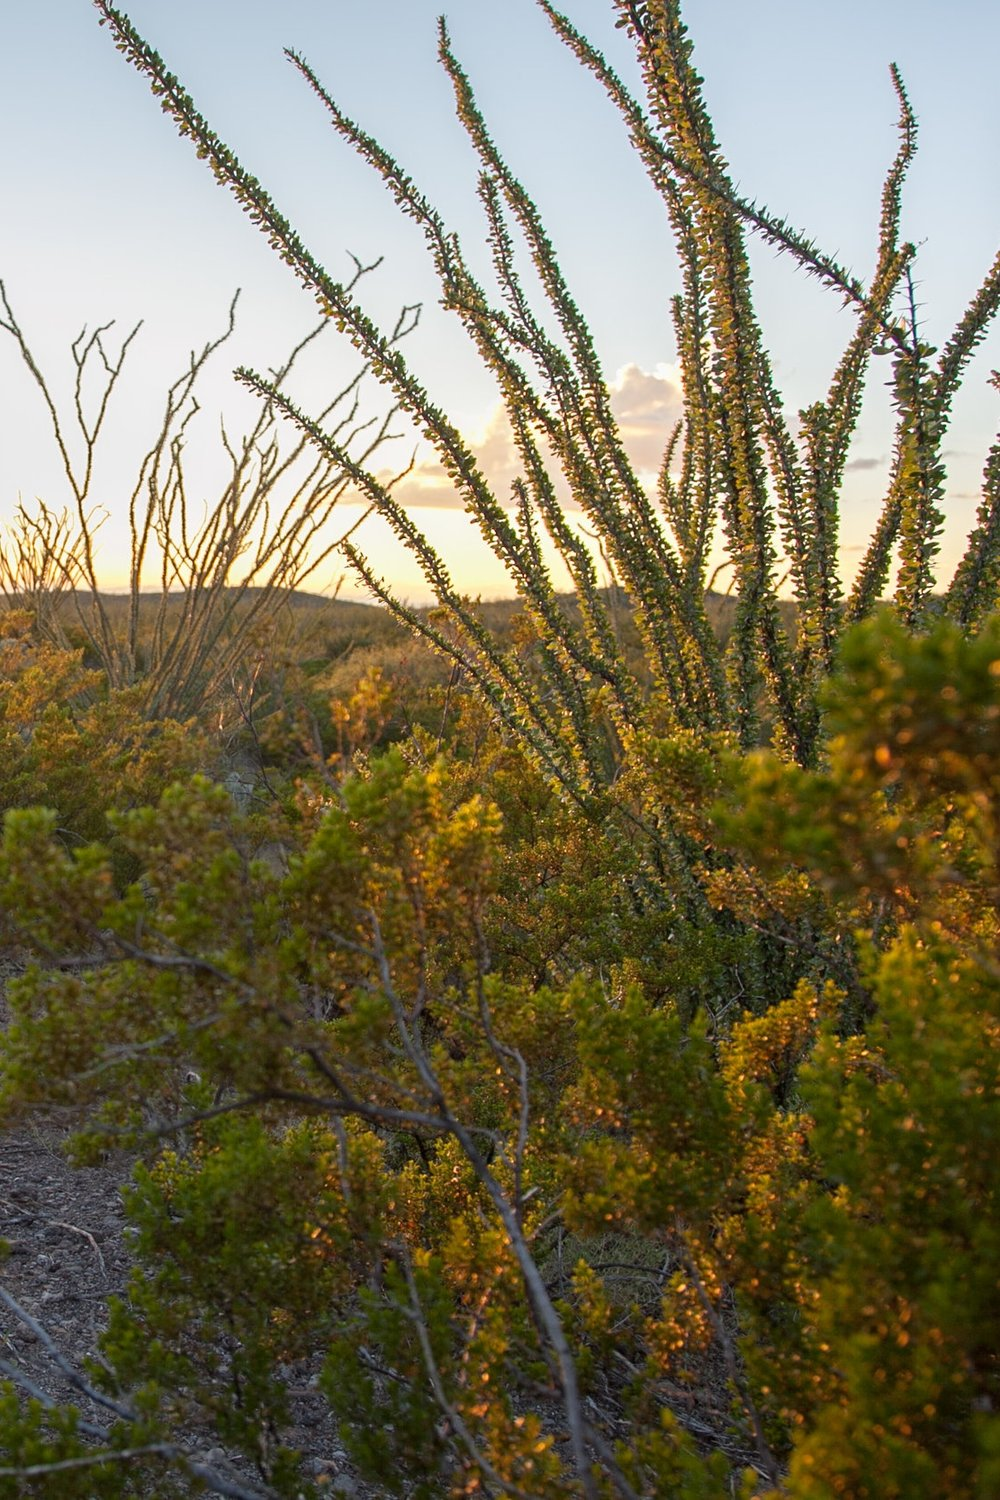 Ocatillo at sunset in Big Bend Ranch State Park.